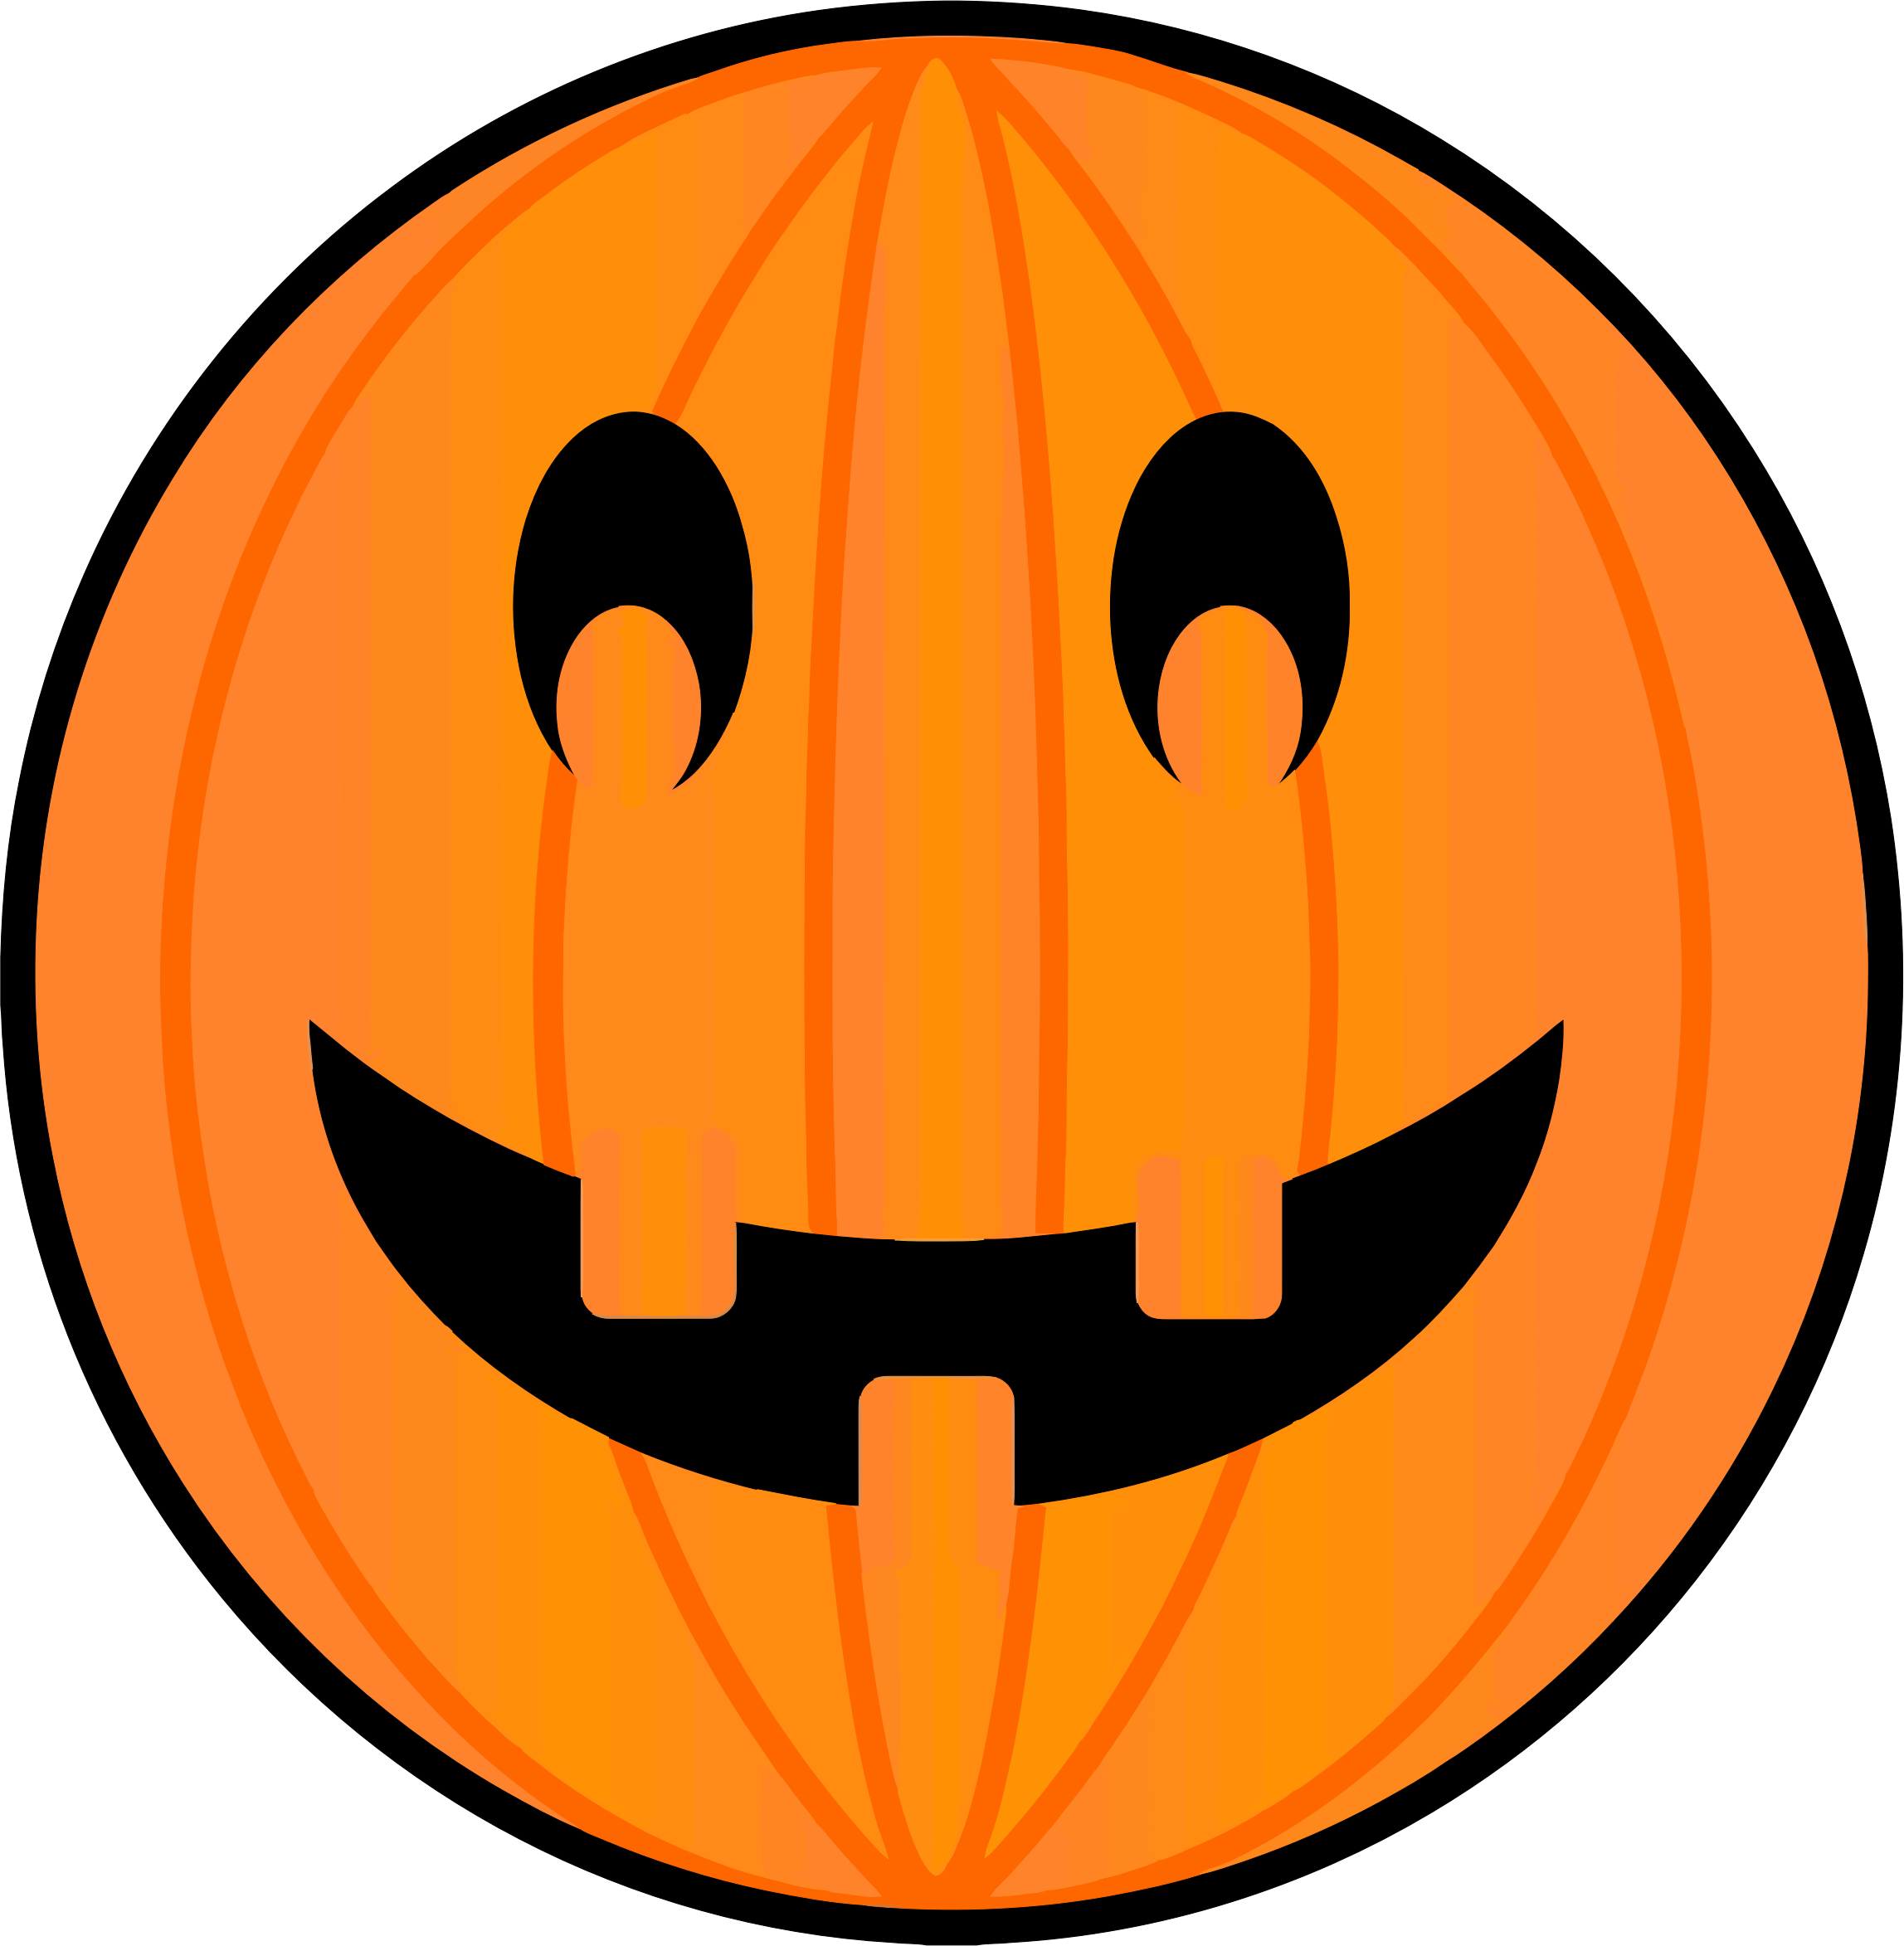 Pumpkin faces happy clipart graphic transparent stock Jack o lantern clipart halloween jack - Clipartix graphic transparent stock